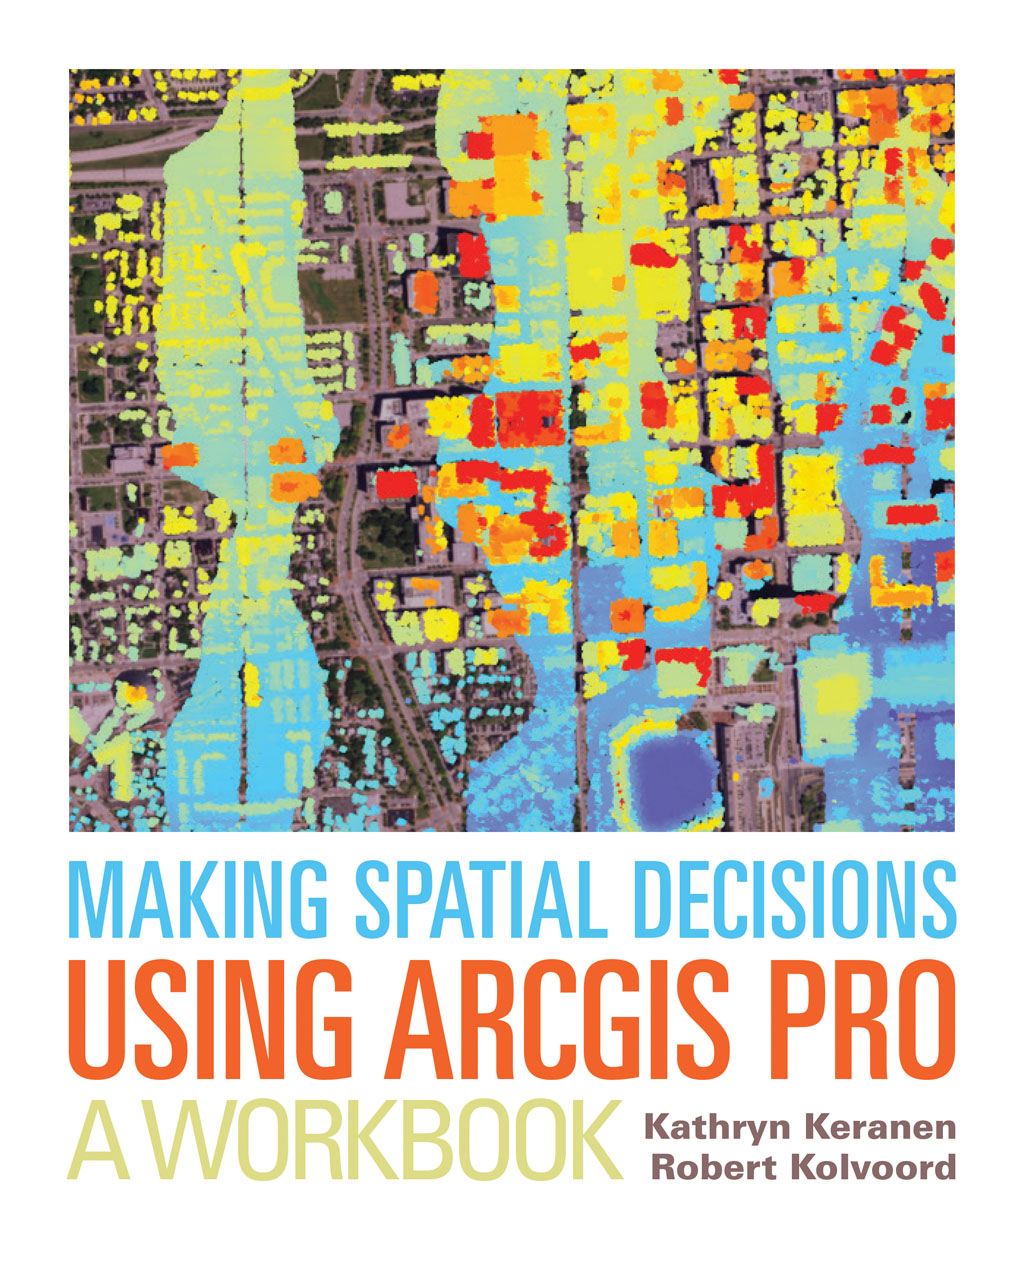 Making Spatial Decisions Using ArcGIS Pro a Workbook